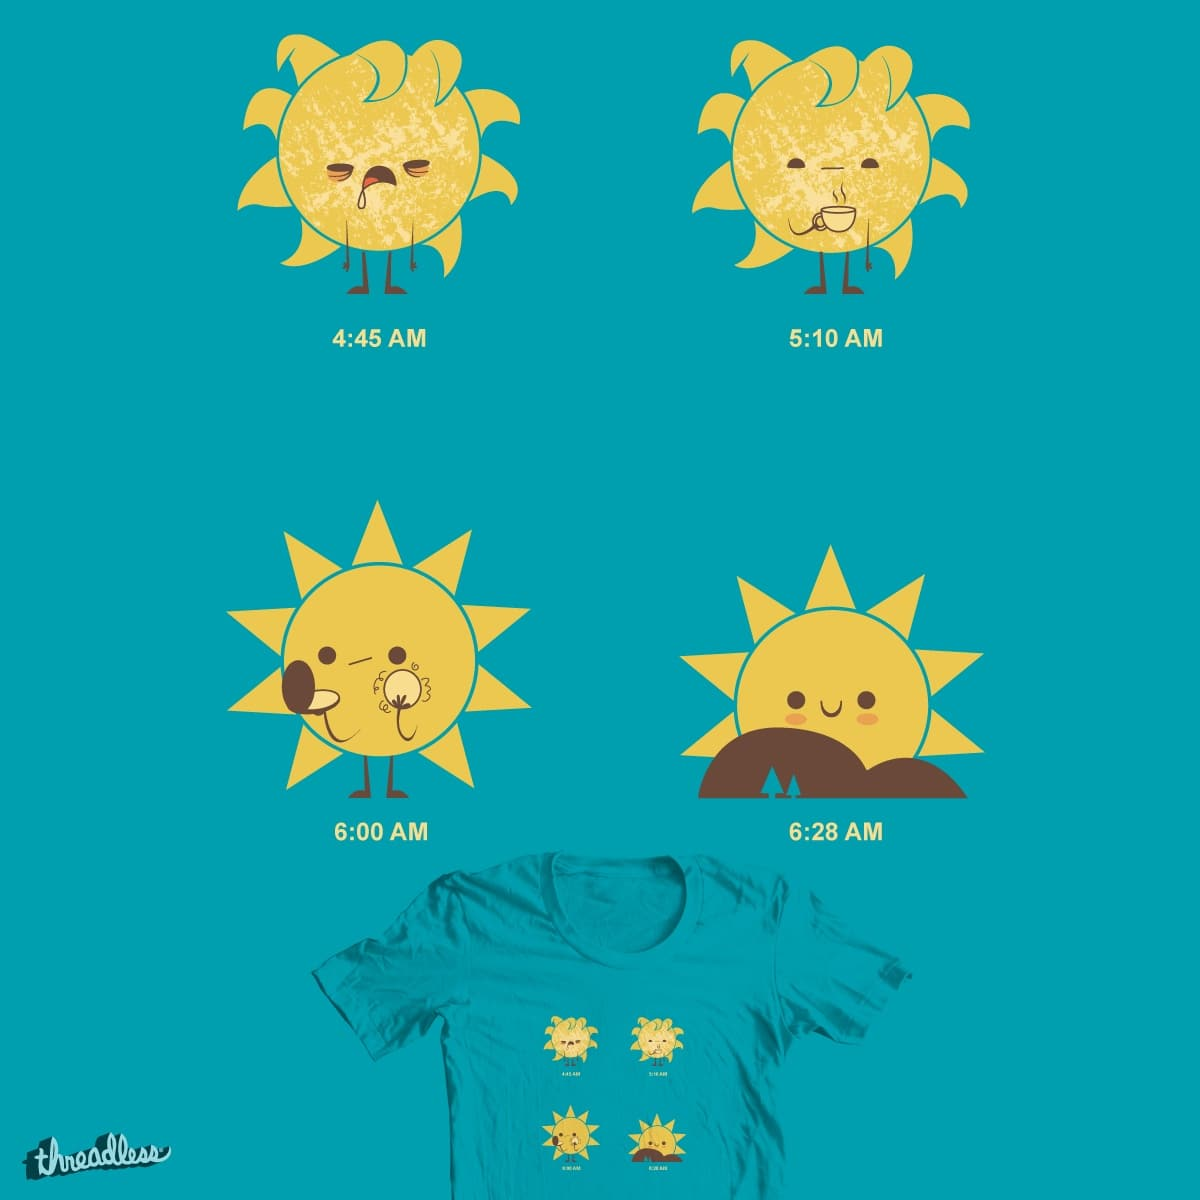 Rise and shine by Leroy_Hornblower on Threadless